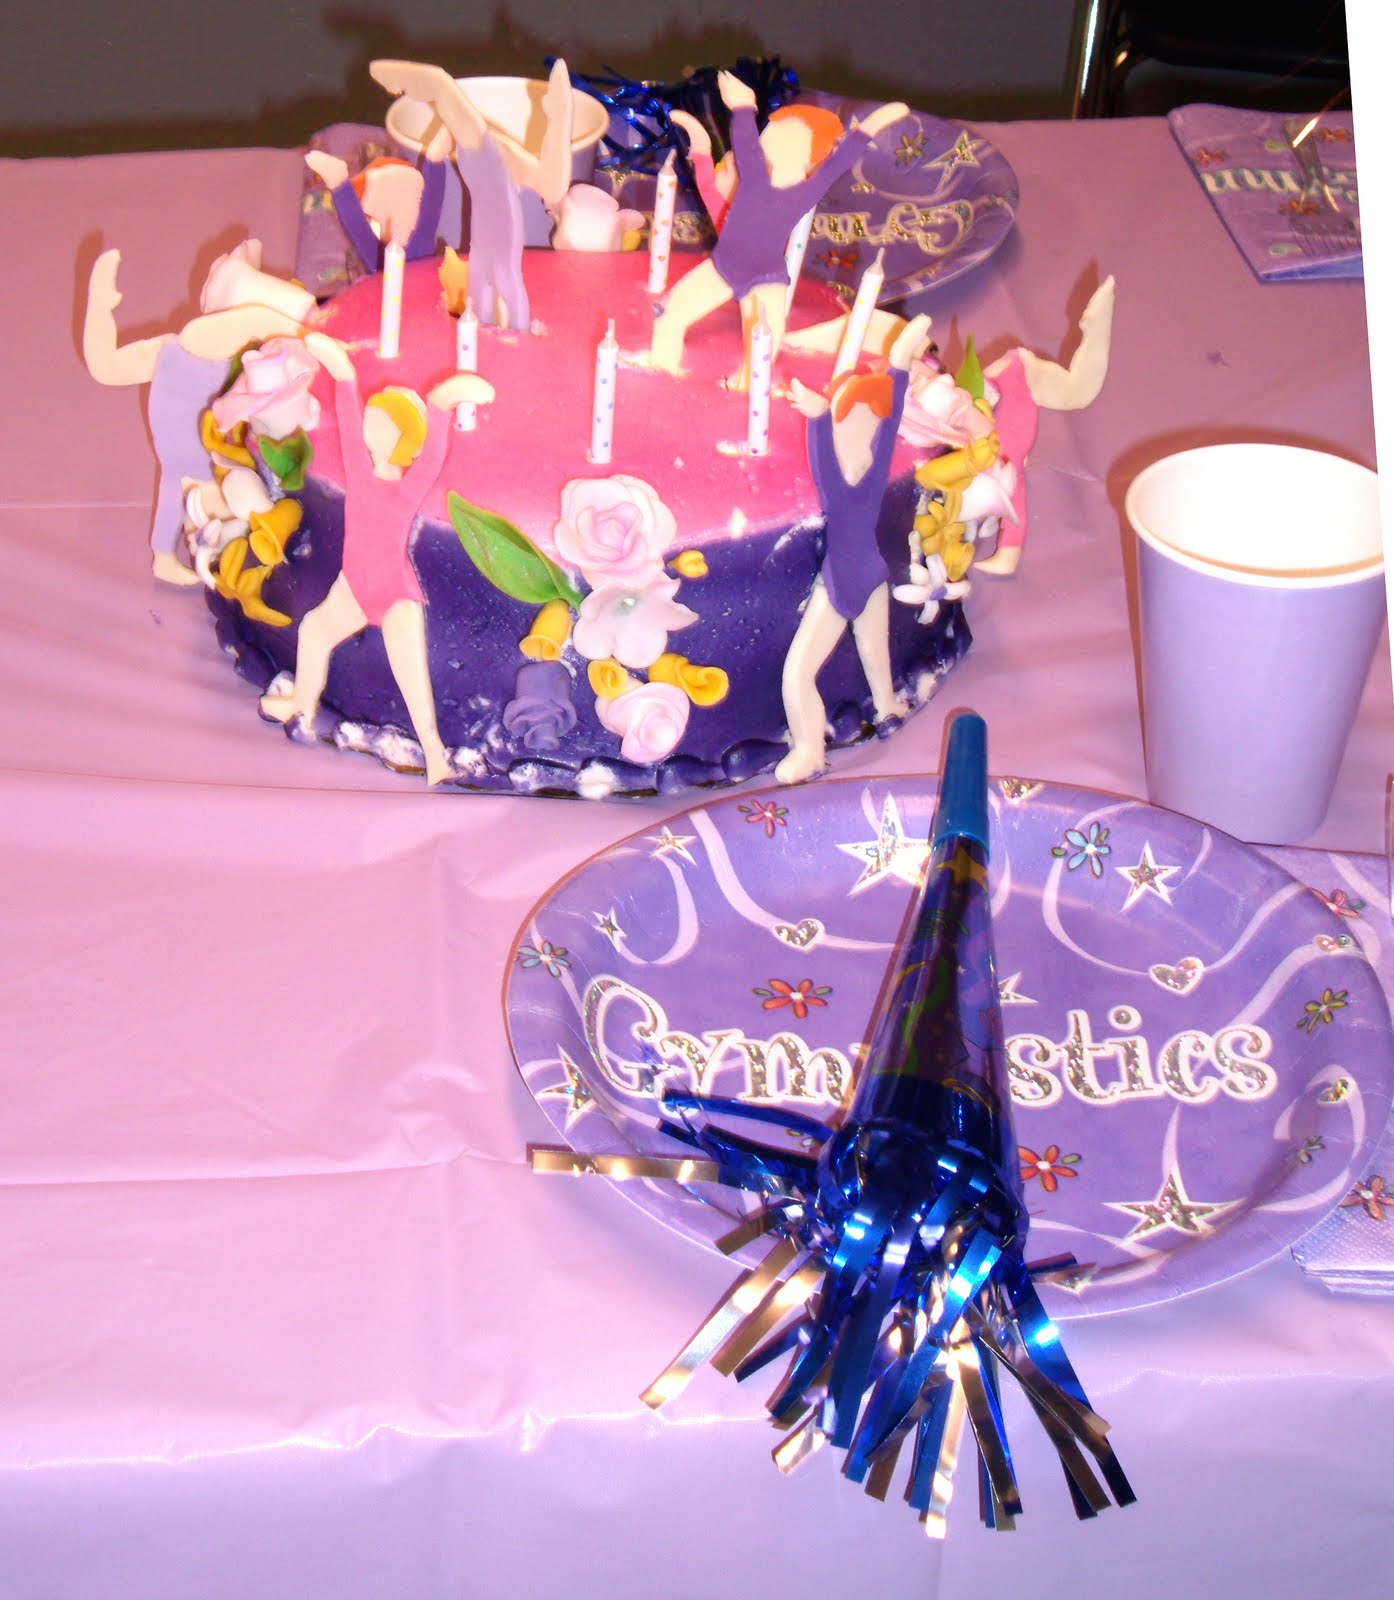 Gymnastics Birthday Party Decorations Party Dreamers Party Planners 541 858 8923